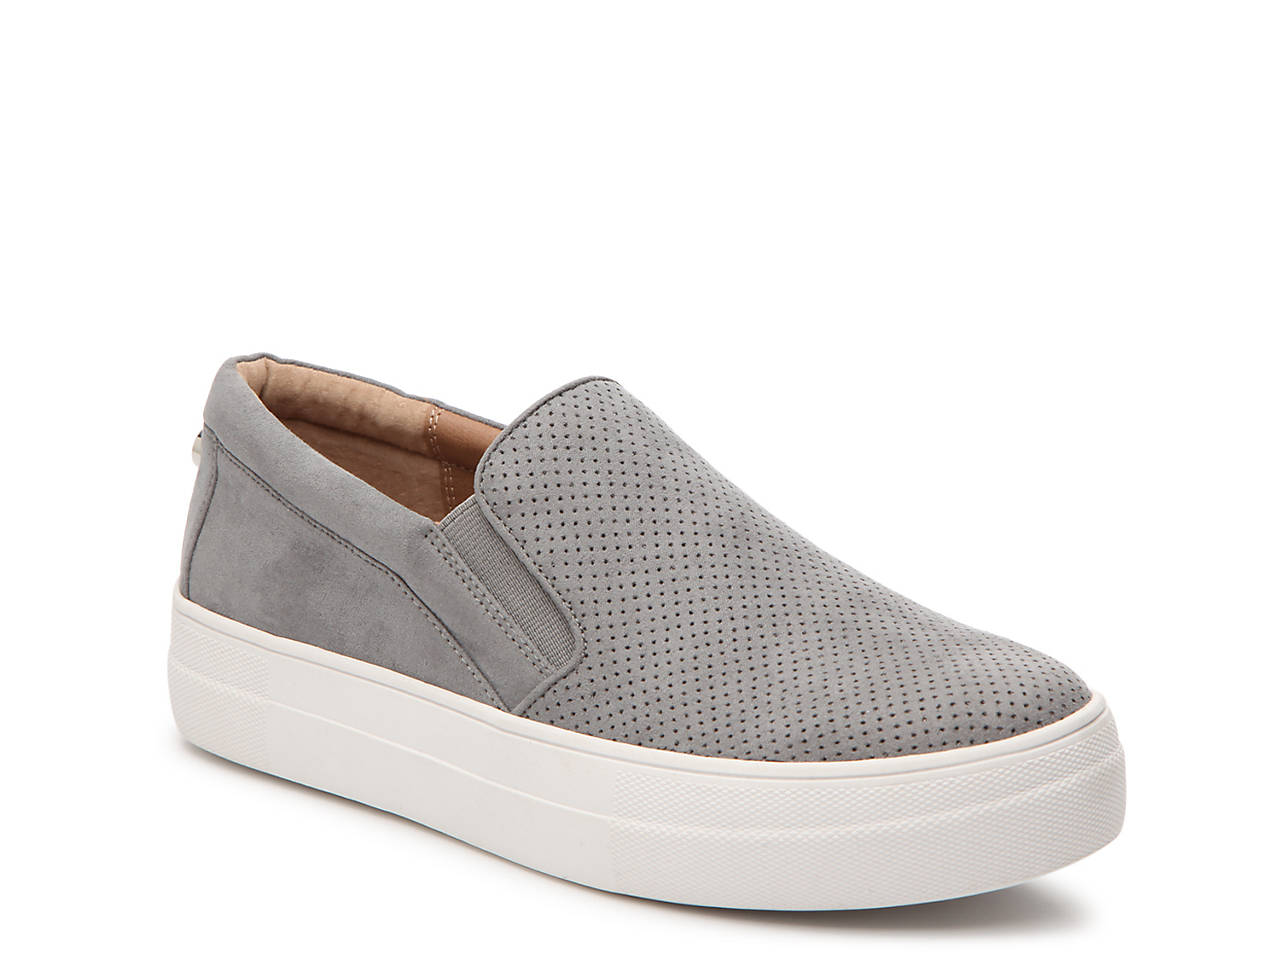 df5d898024c Steve Madden Giovana Slip-On Sneaker Women s Shoes